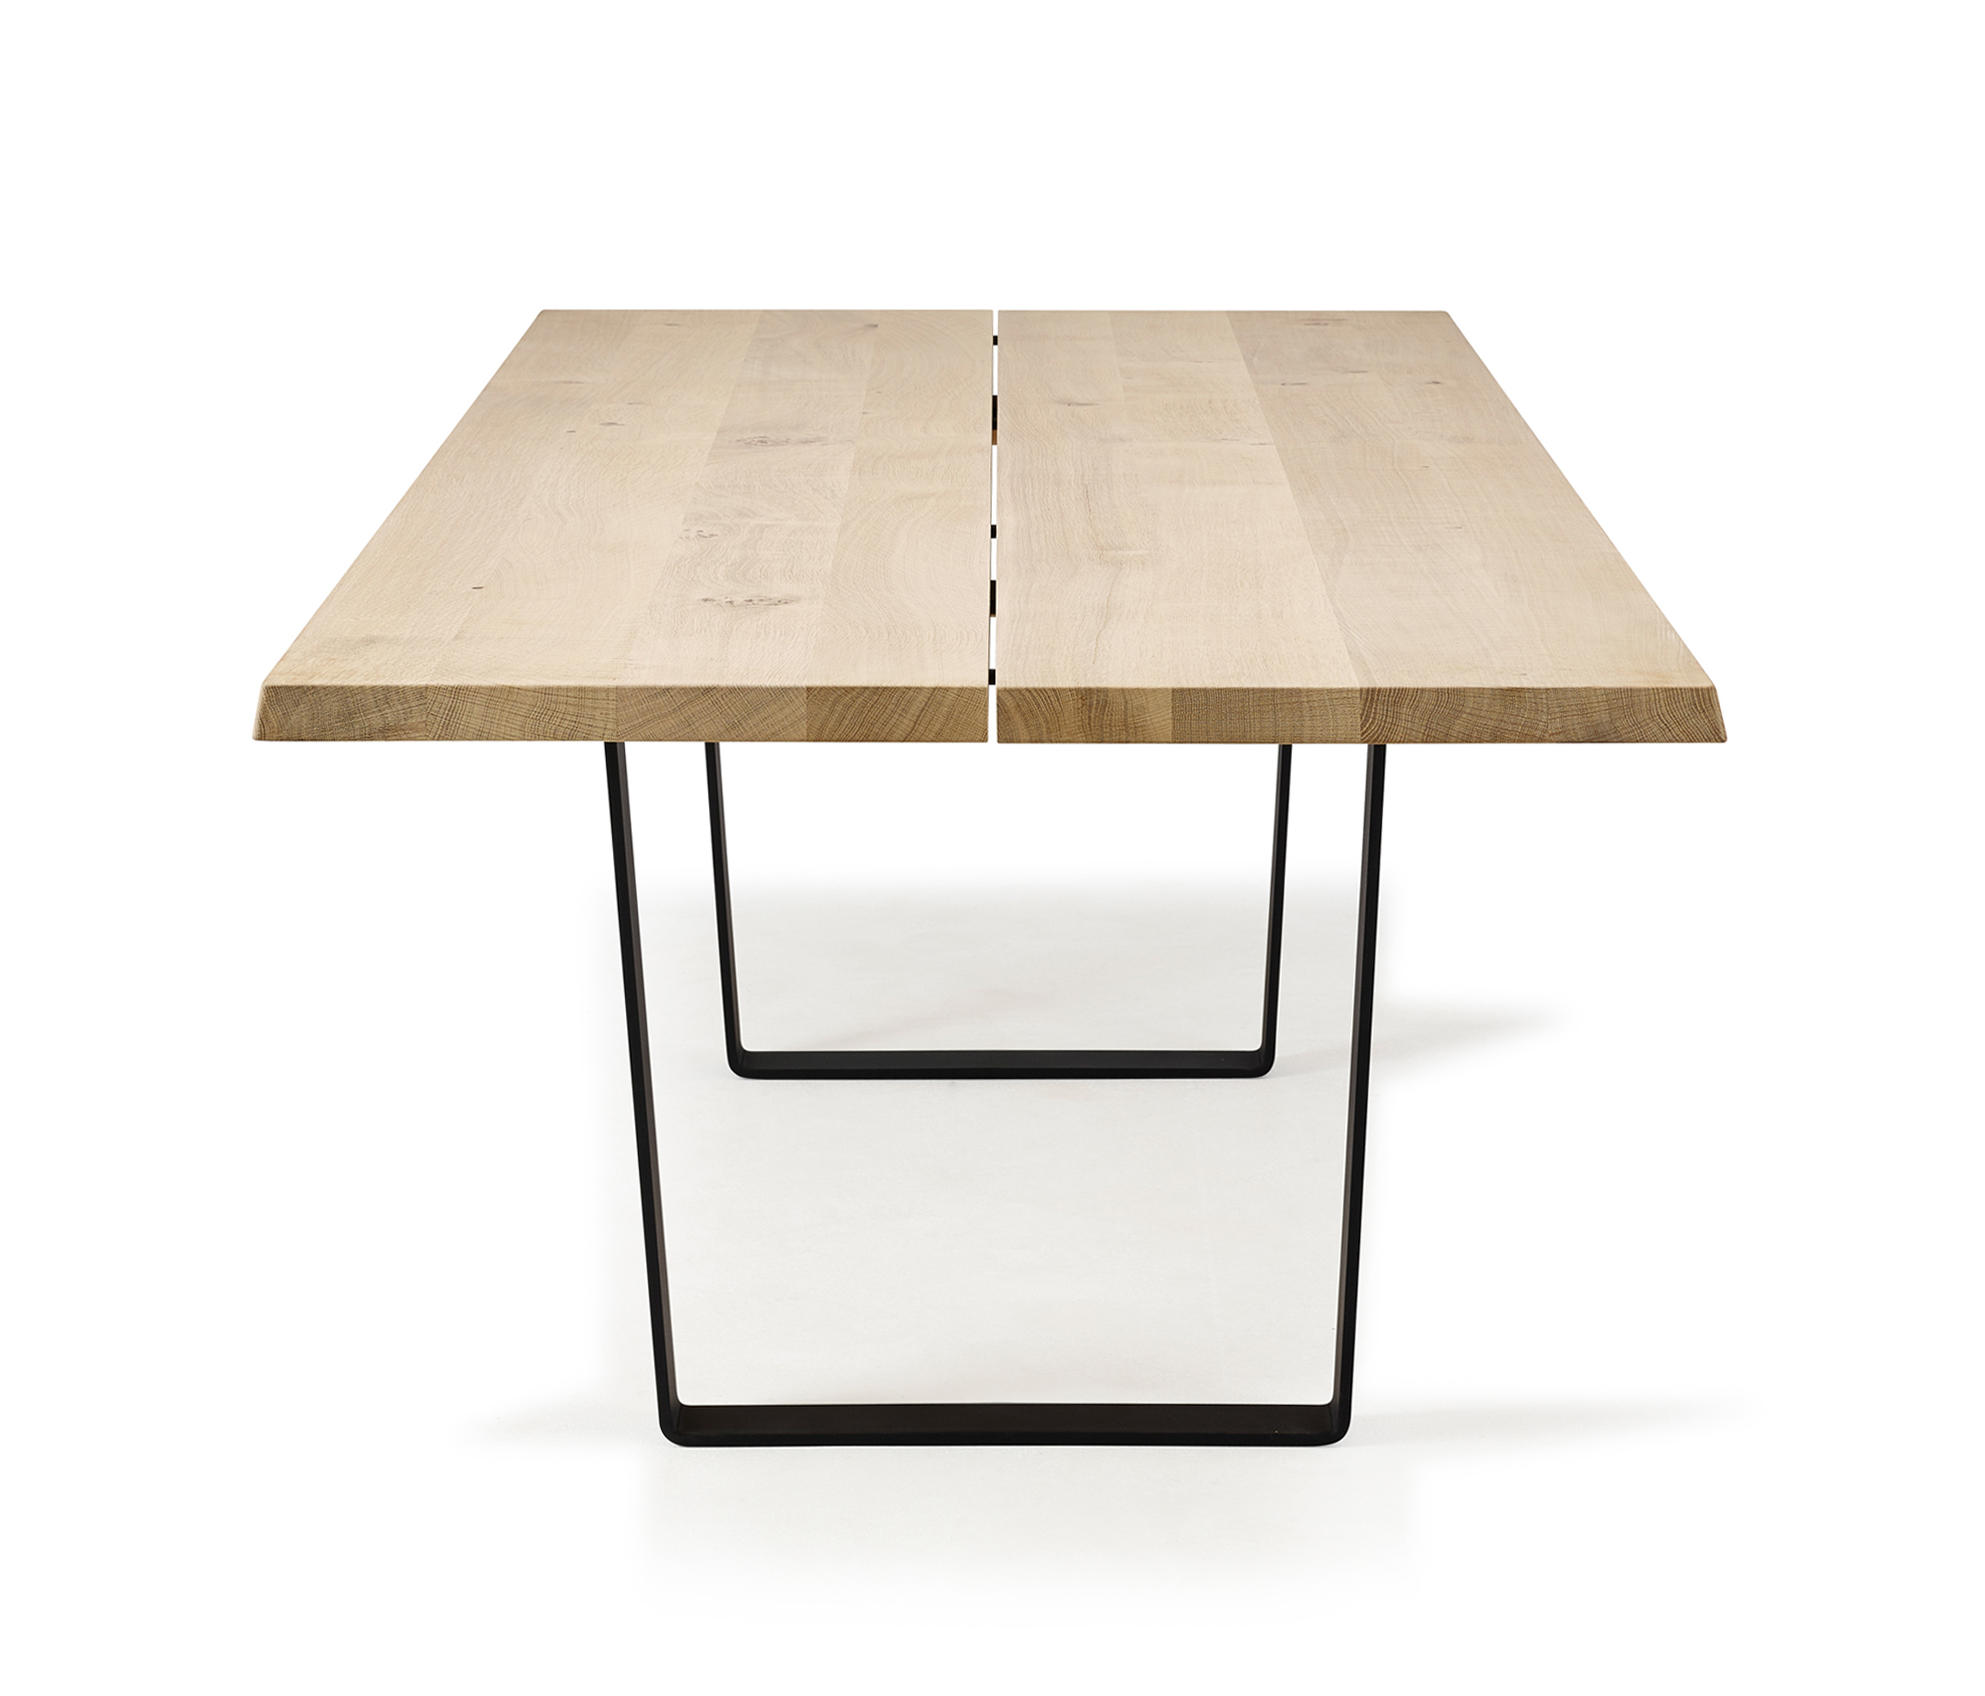 LOWLIGHT TABLE Restaurant Tables By Dk3 Architonic. Full resolution  image, nominally Width 1985 Height 1696 pixels, image with #856946.